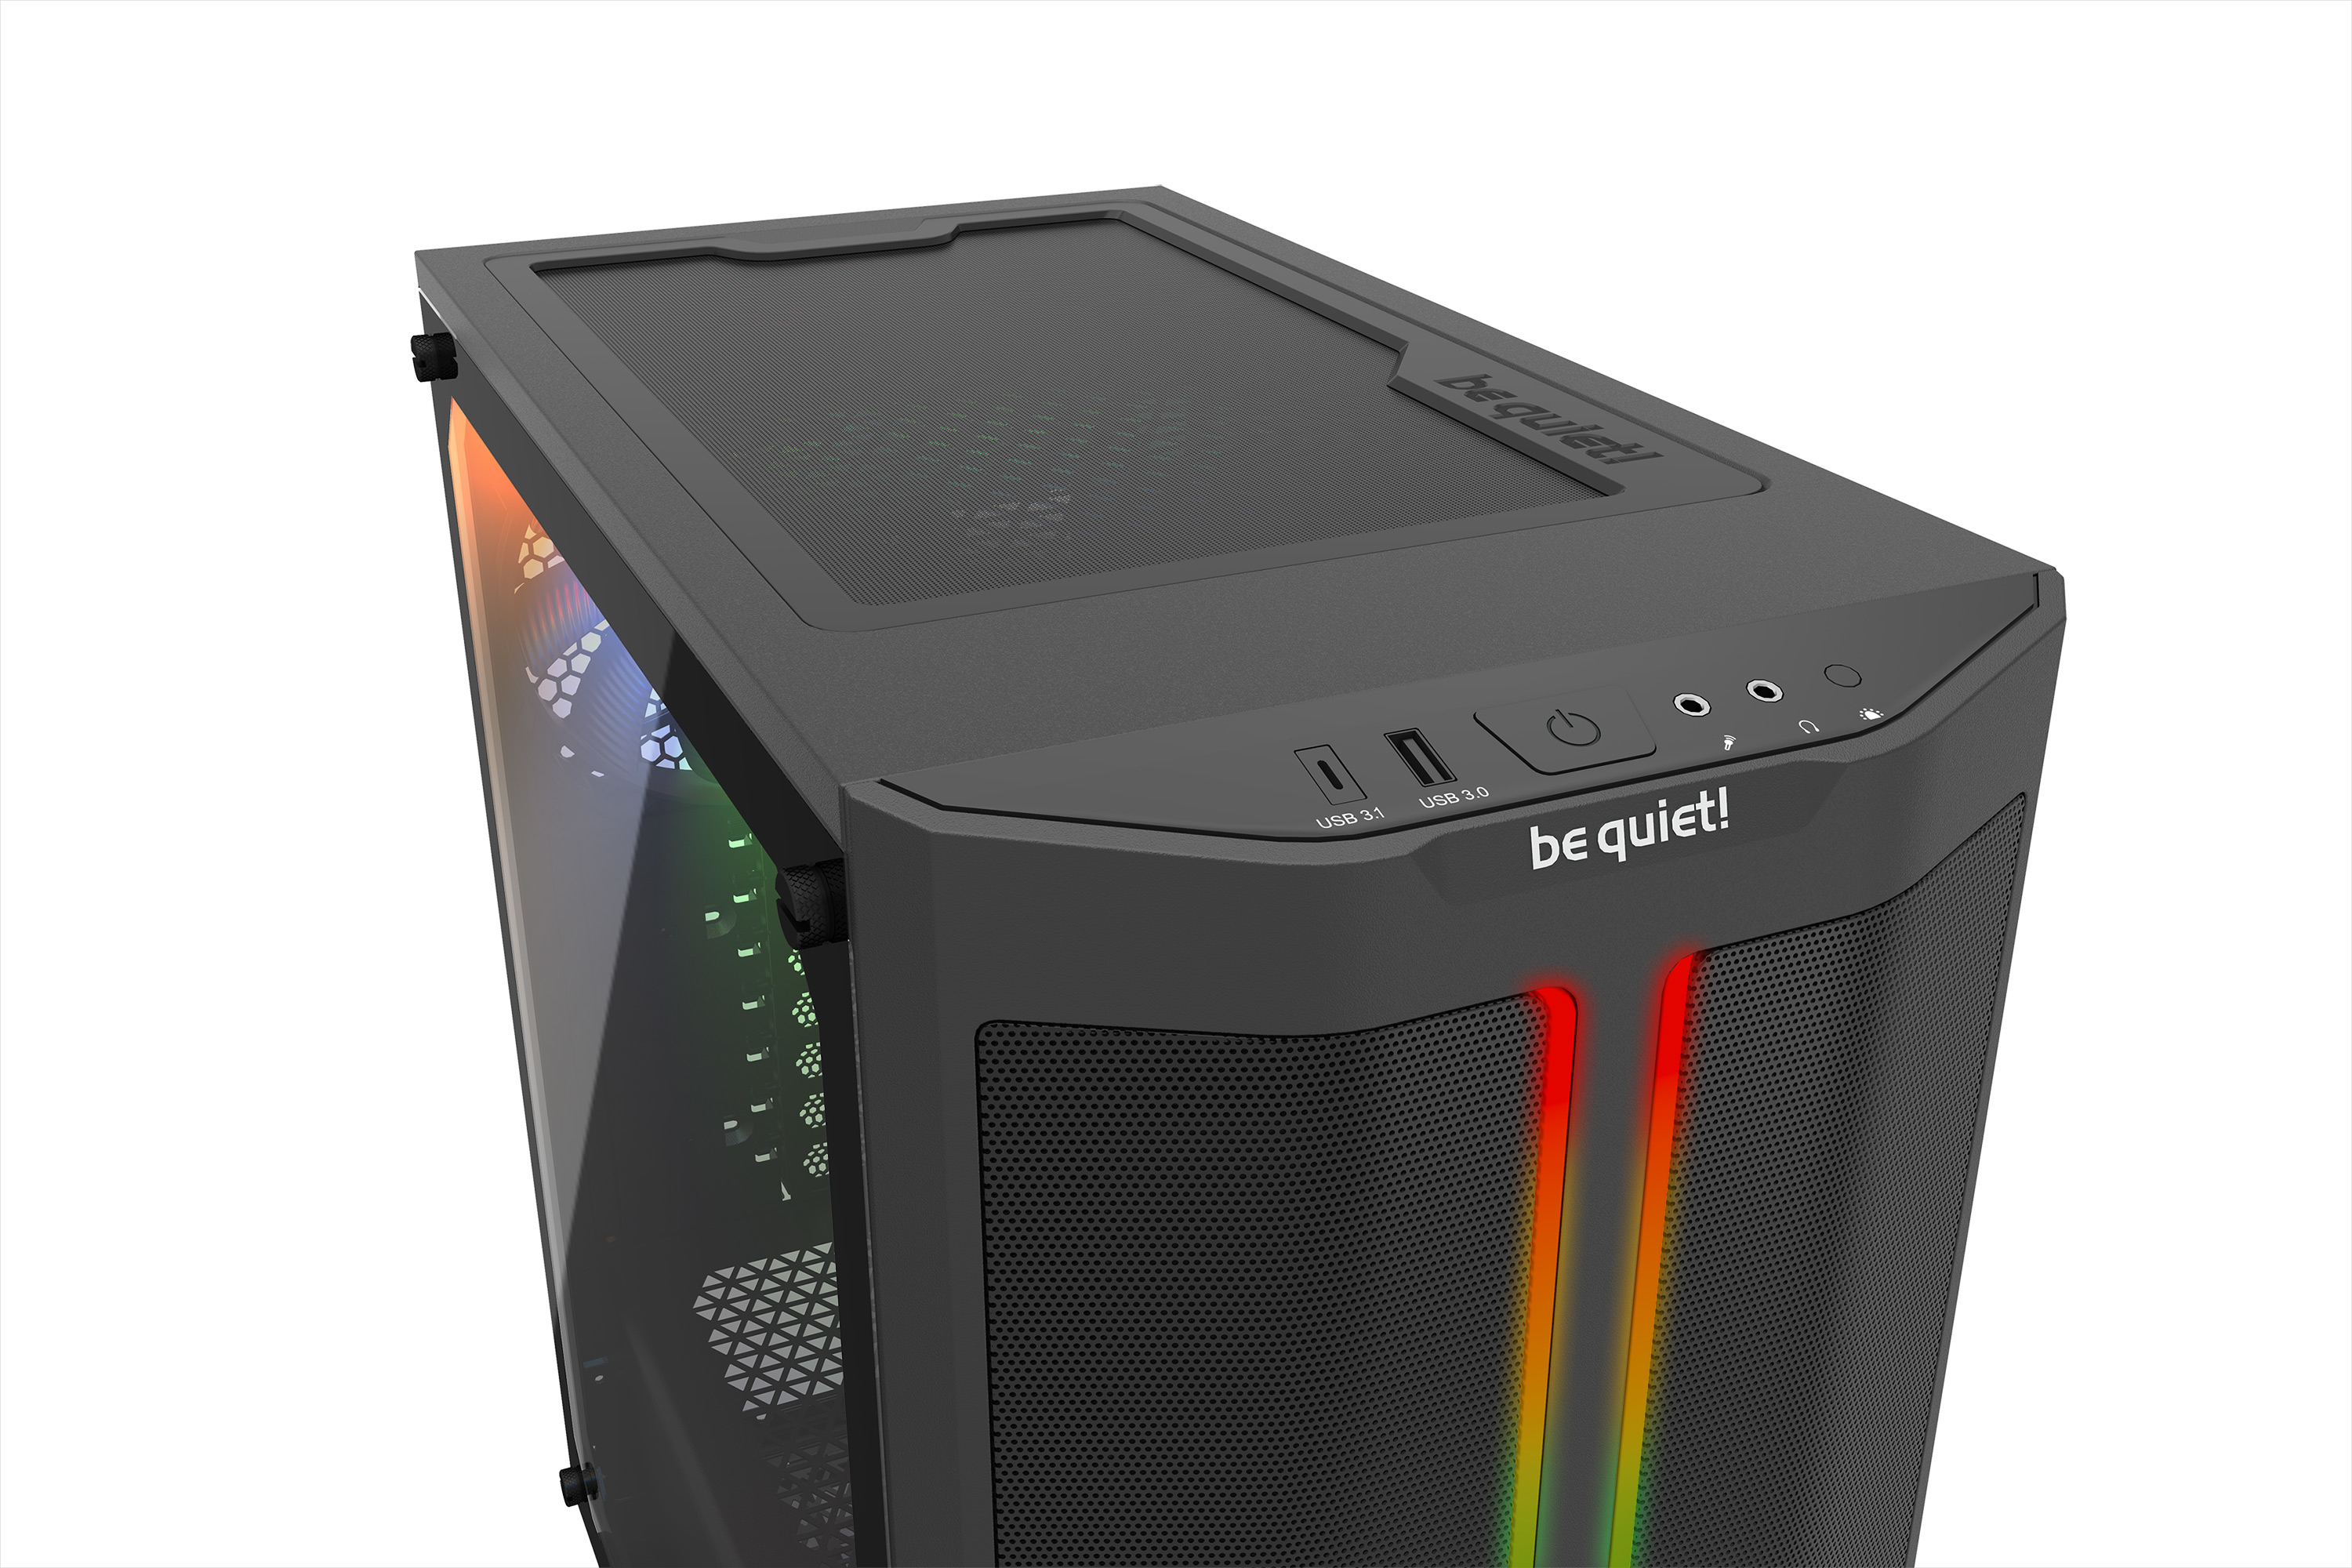 be quiet! Pure Base 500DX Black, 463 x 232 x 450, IO-panel: 1x USB Type C gen 2, 1x USB 3.0, HD Audio, 5x 2,5 inch, 2x 3,5 inch, inc 3x 140 mm Pure Wings 2, max GPU 369mm, 3 pin a-RGB